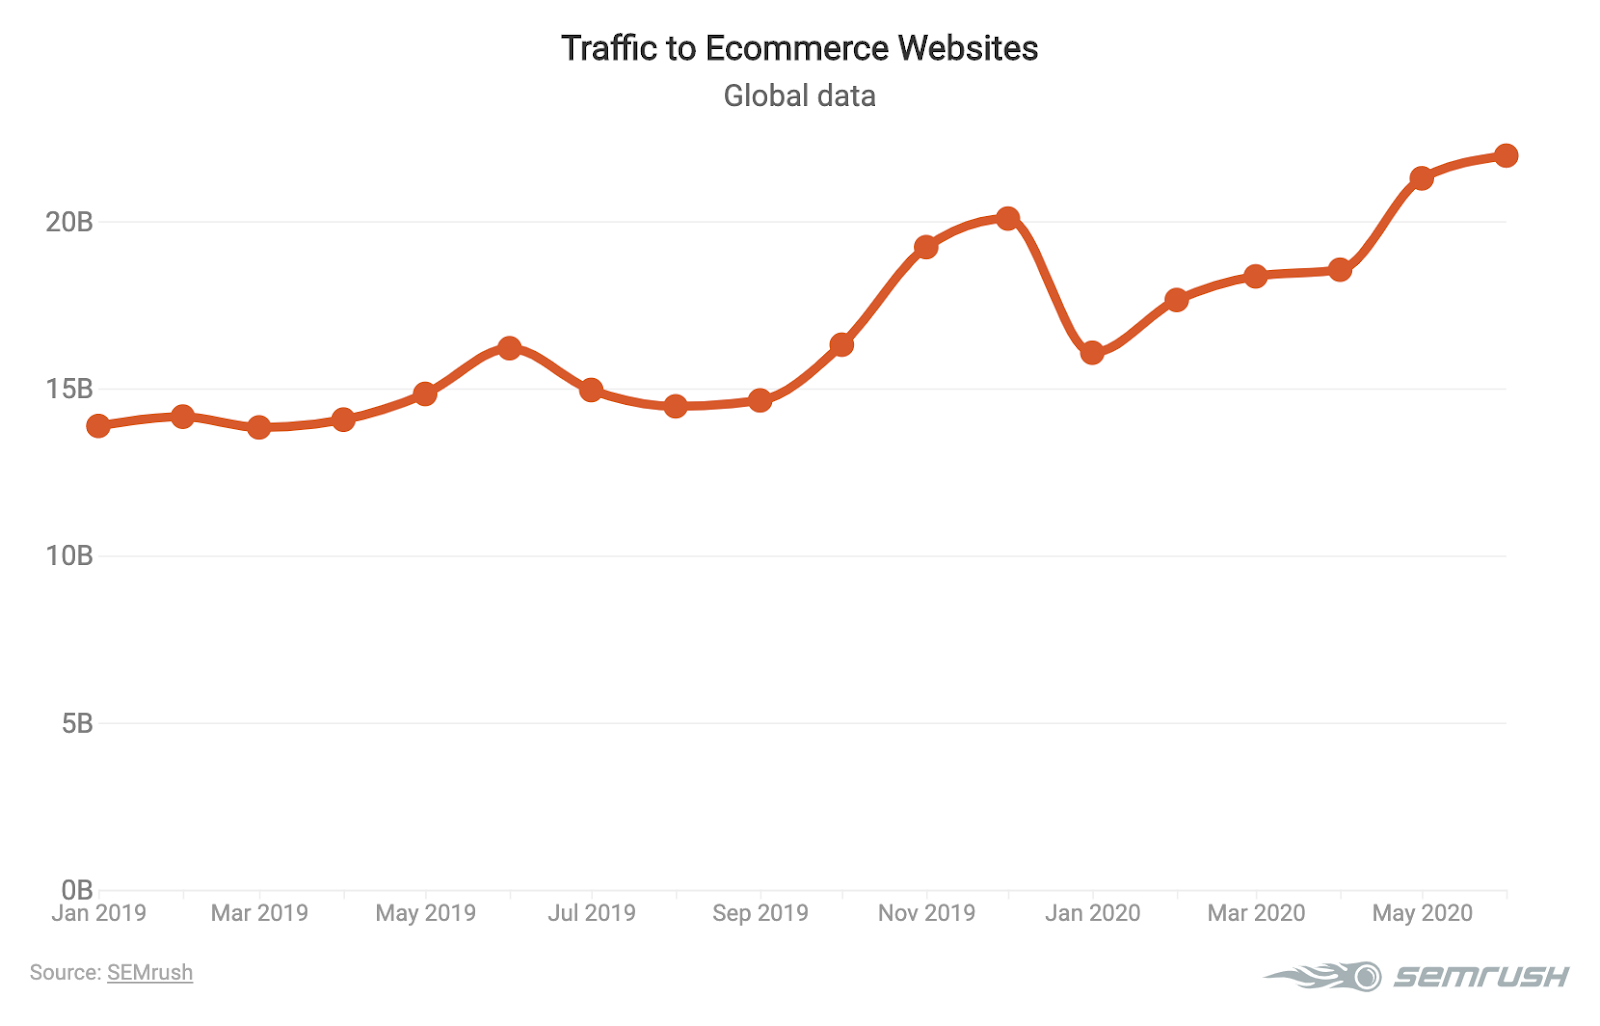 Traffic to ecommerce websites graphic